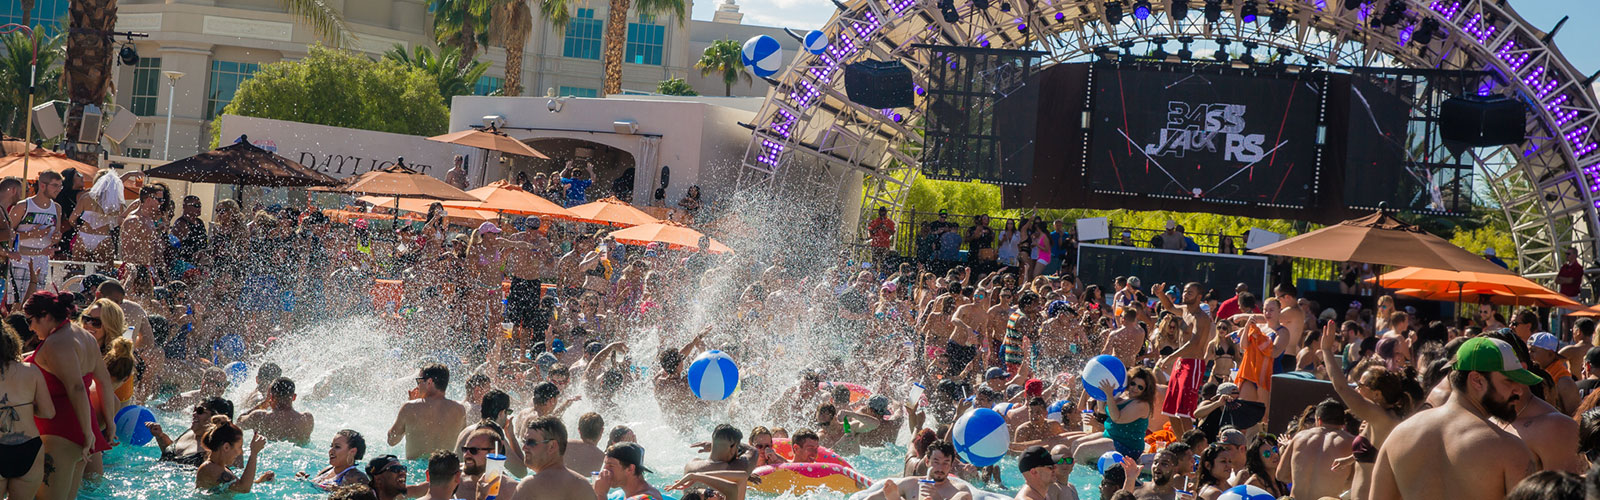 las vegas beach clubs